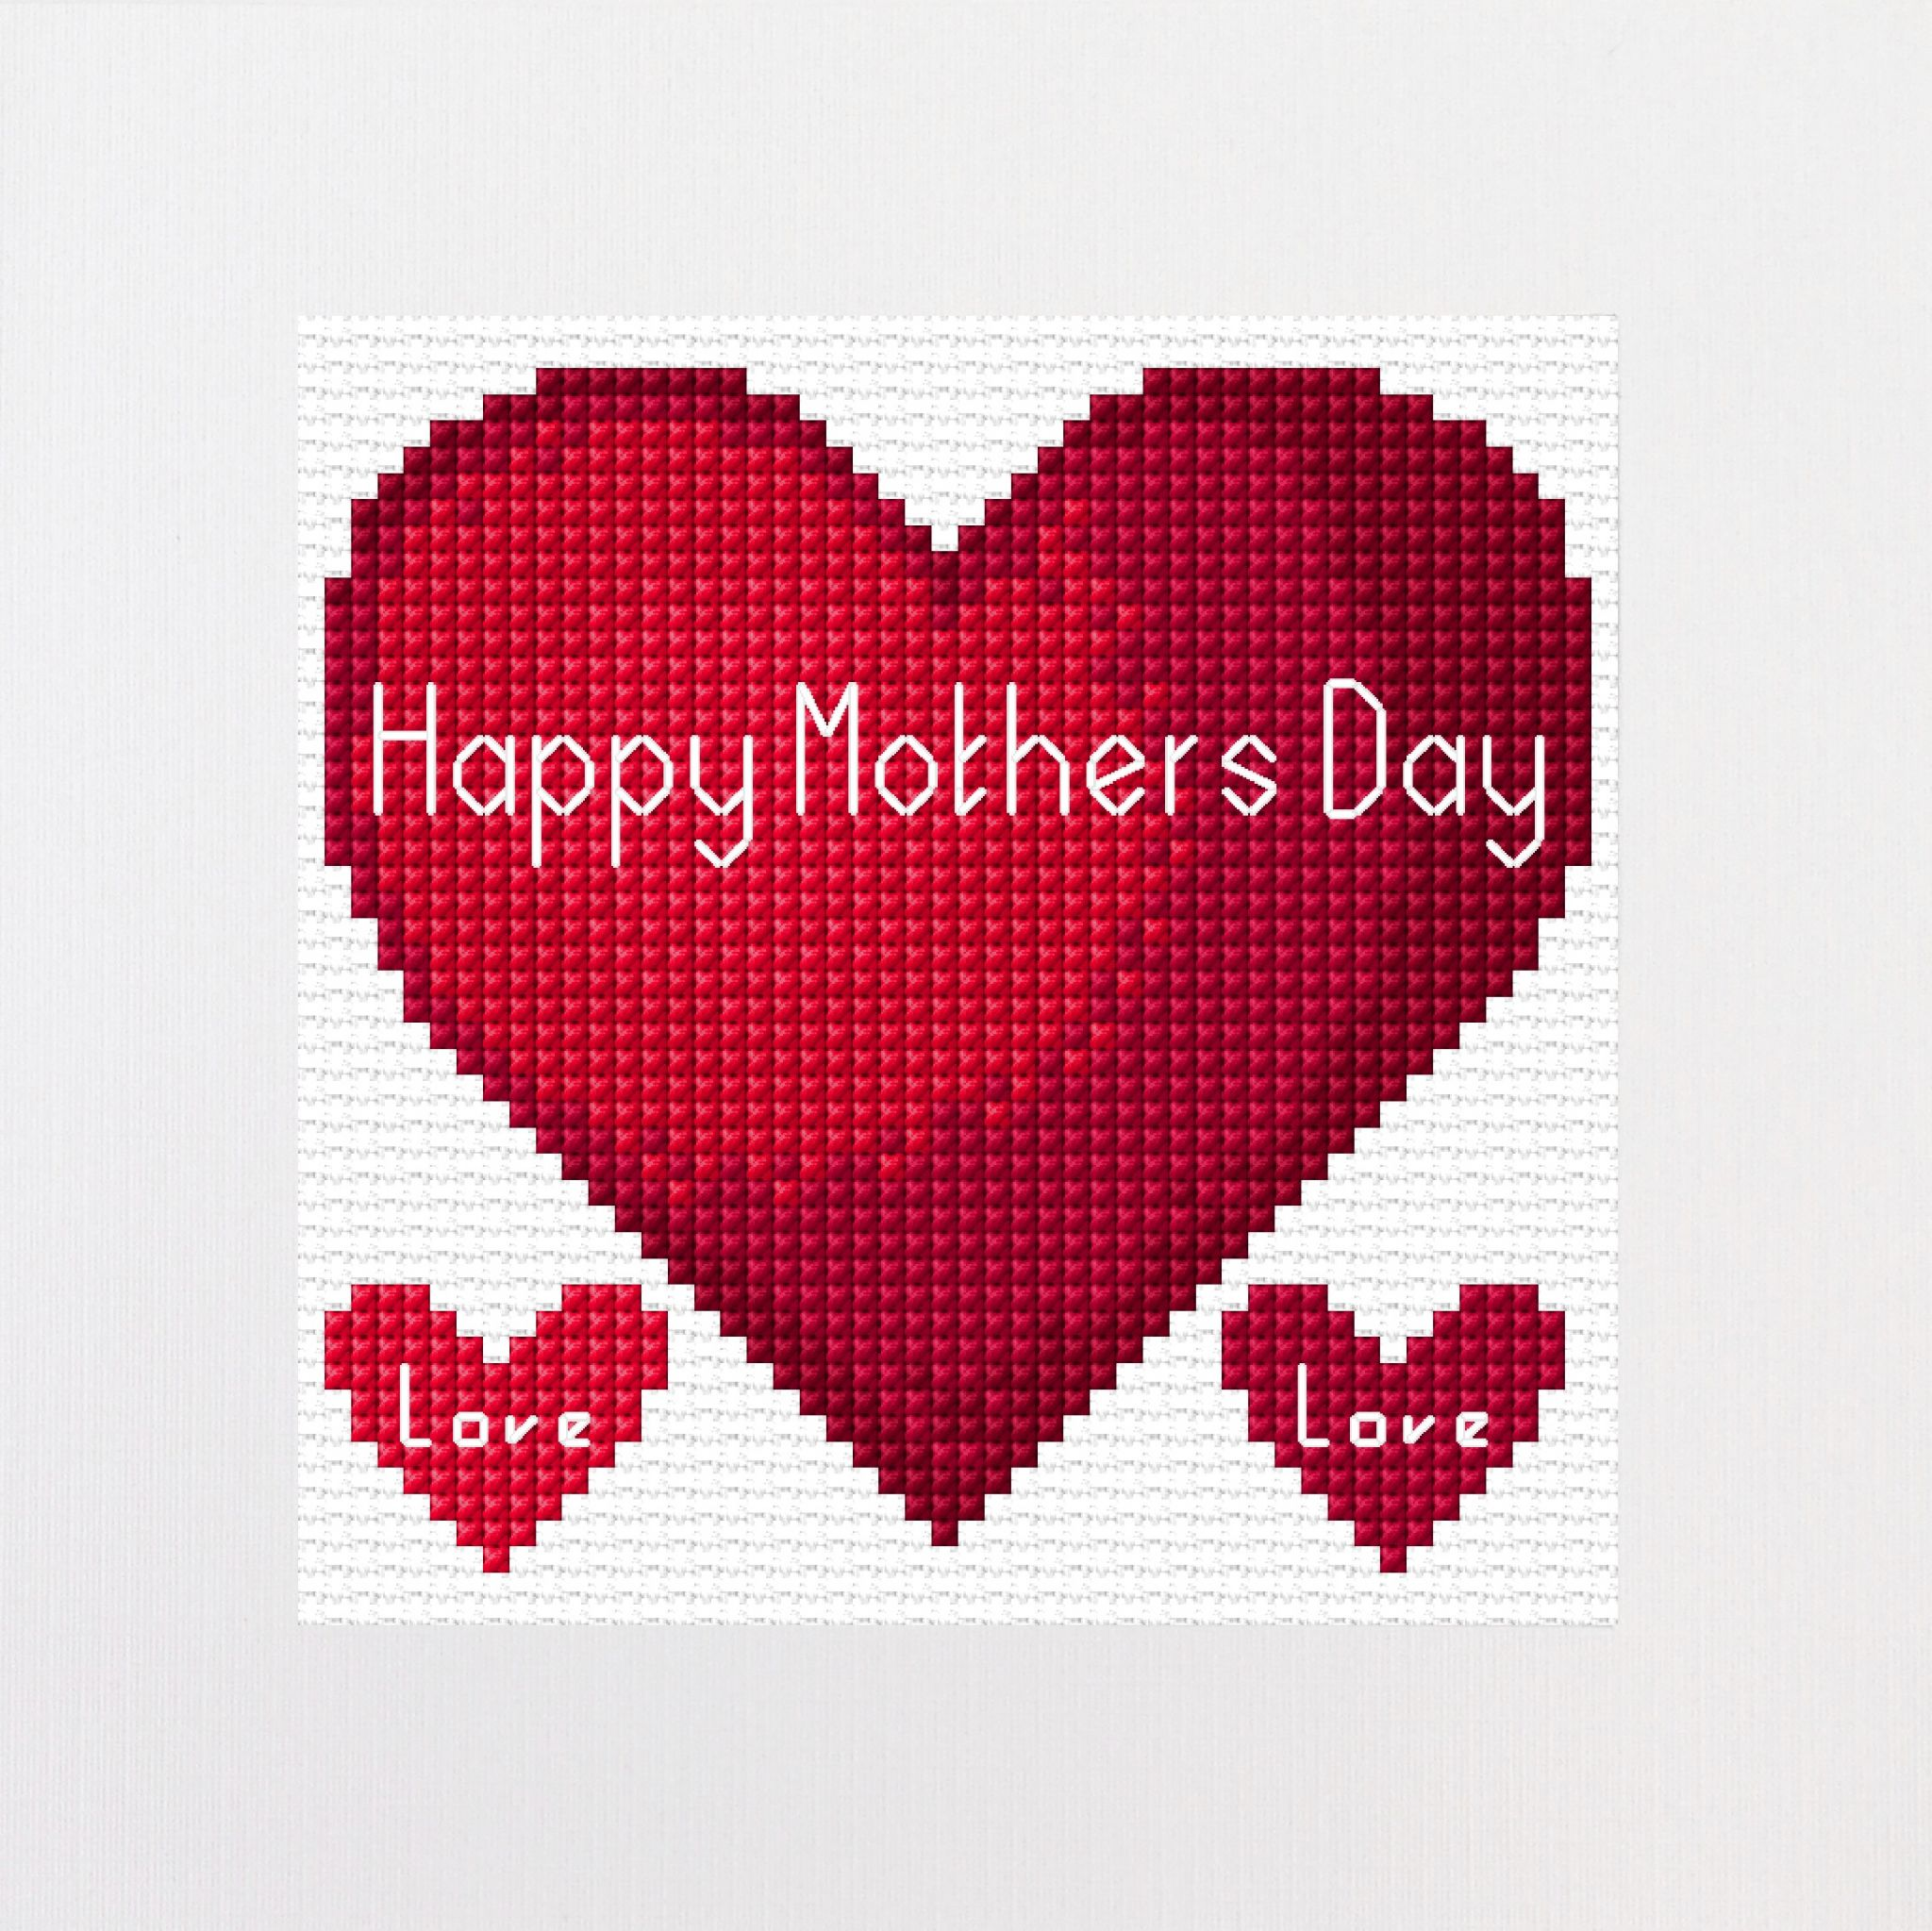 red heart happy mothers day design cross stitch card kit 5 5 x 5 5